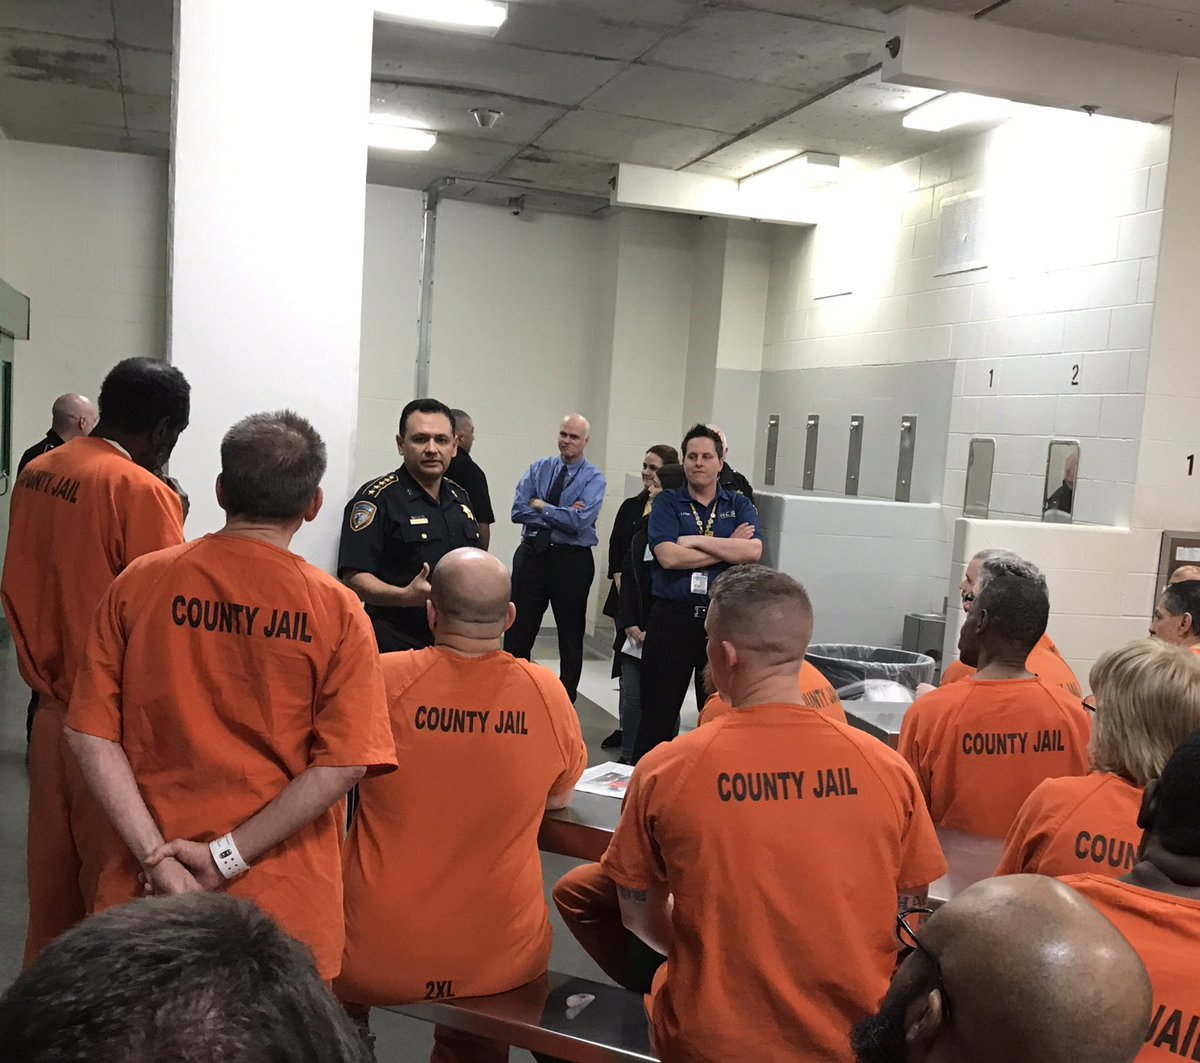 @HCSO_MHU @HCSOTexas @SheriffEd_HCSO kicking off #BrothersInArms. Programming to bring veteran specific resources to #veterans housed in our facilities. Thank you @Heide86905019 for your hard work and commitment to bringing this program to fruition. #recovery #jailchaplaincy